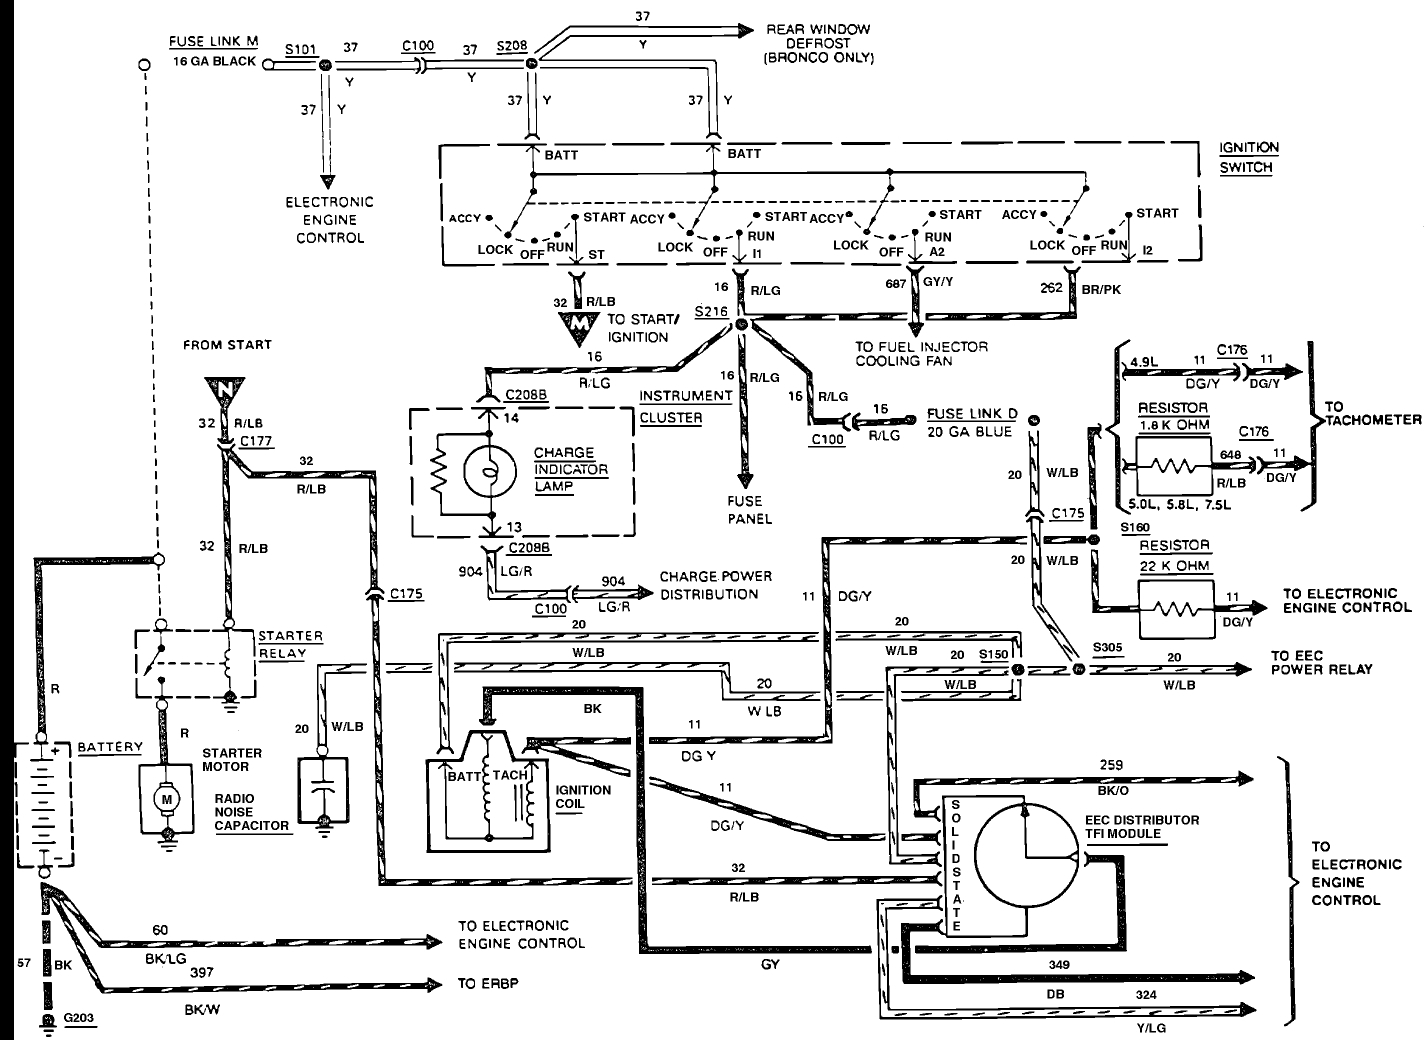 regency conversion van wiring diagram Download-regency van tv wiring diagram wire center u2022 rh 140 82 51 249 Direct TV Wiring 5-j